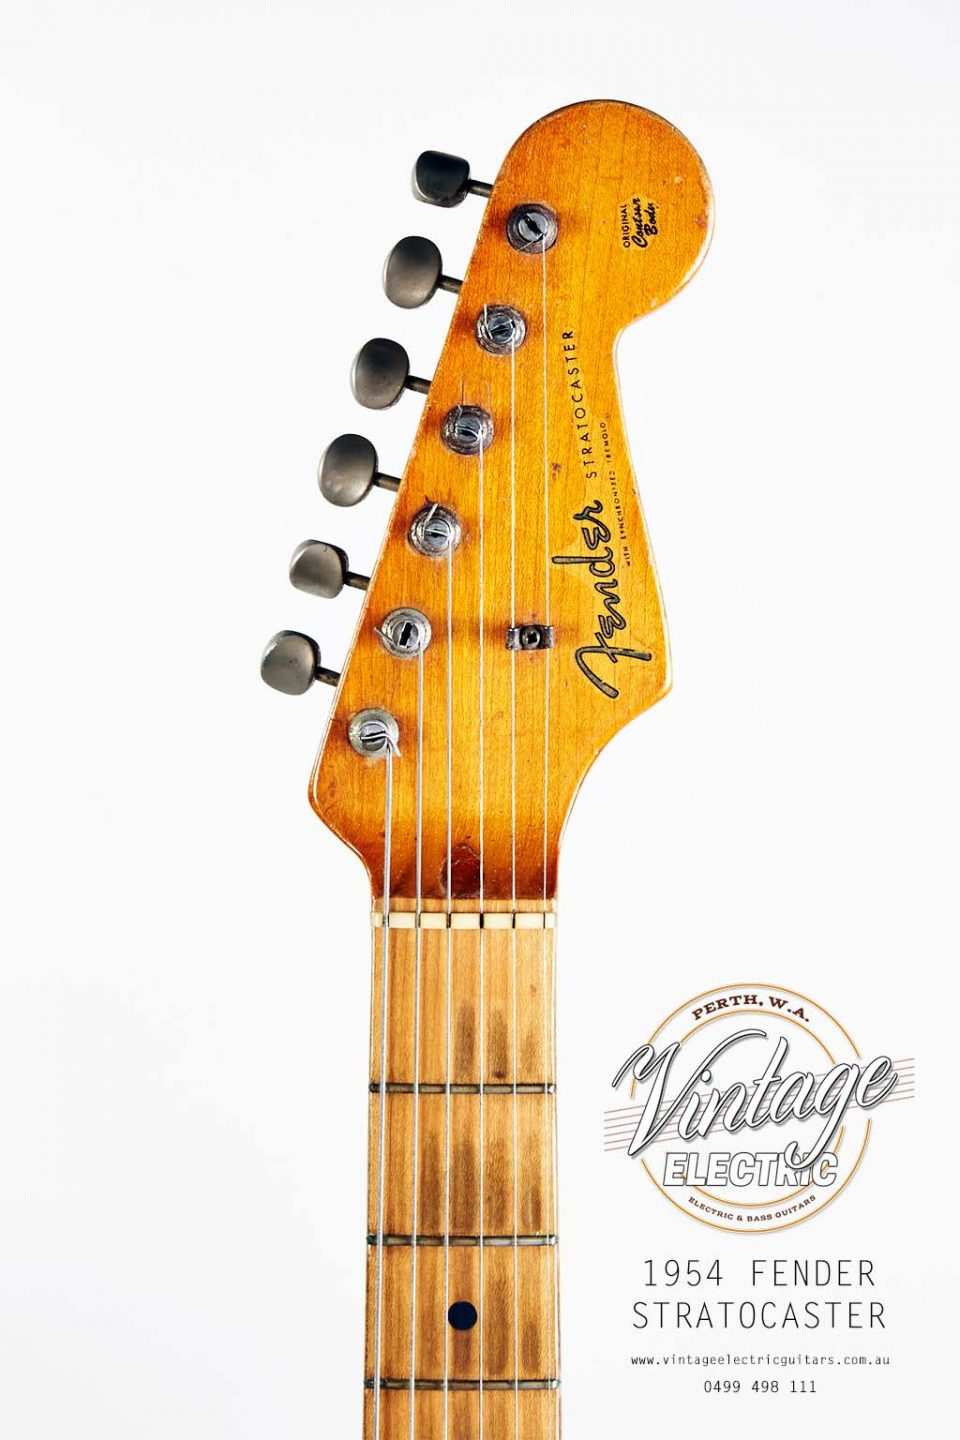 USA 1954 Fender Stratocaster Headstock